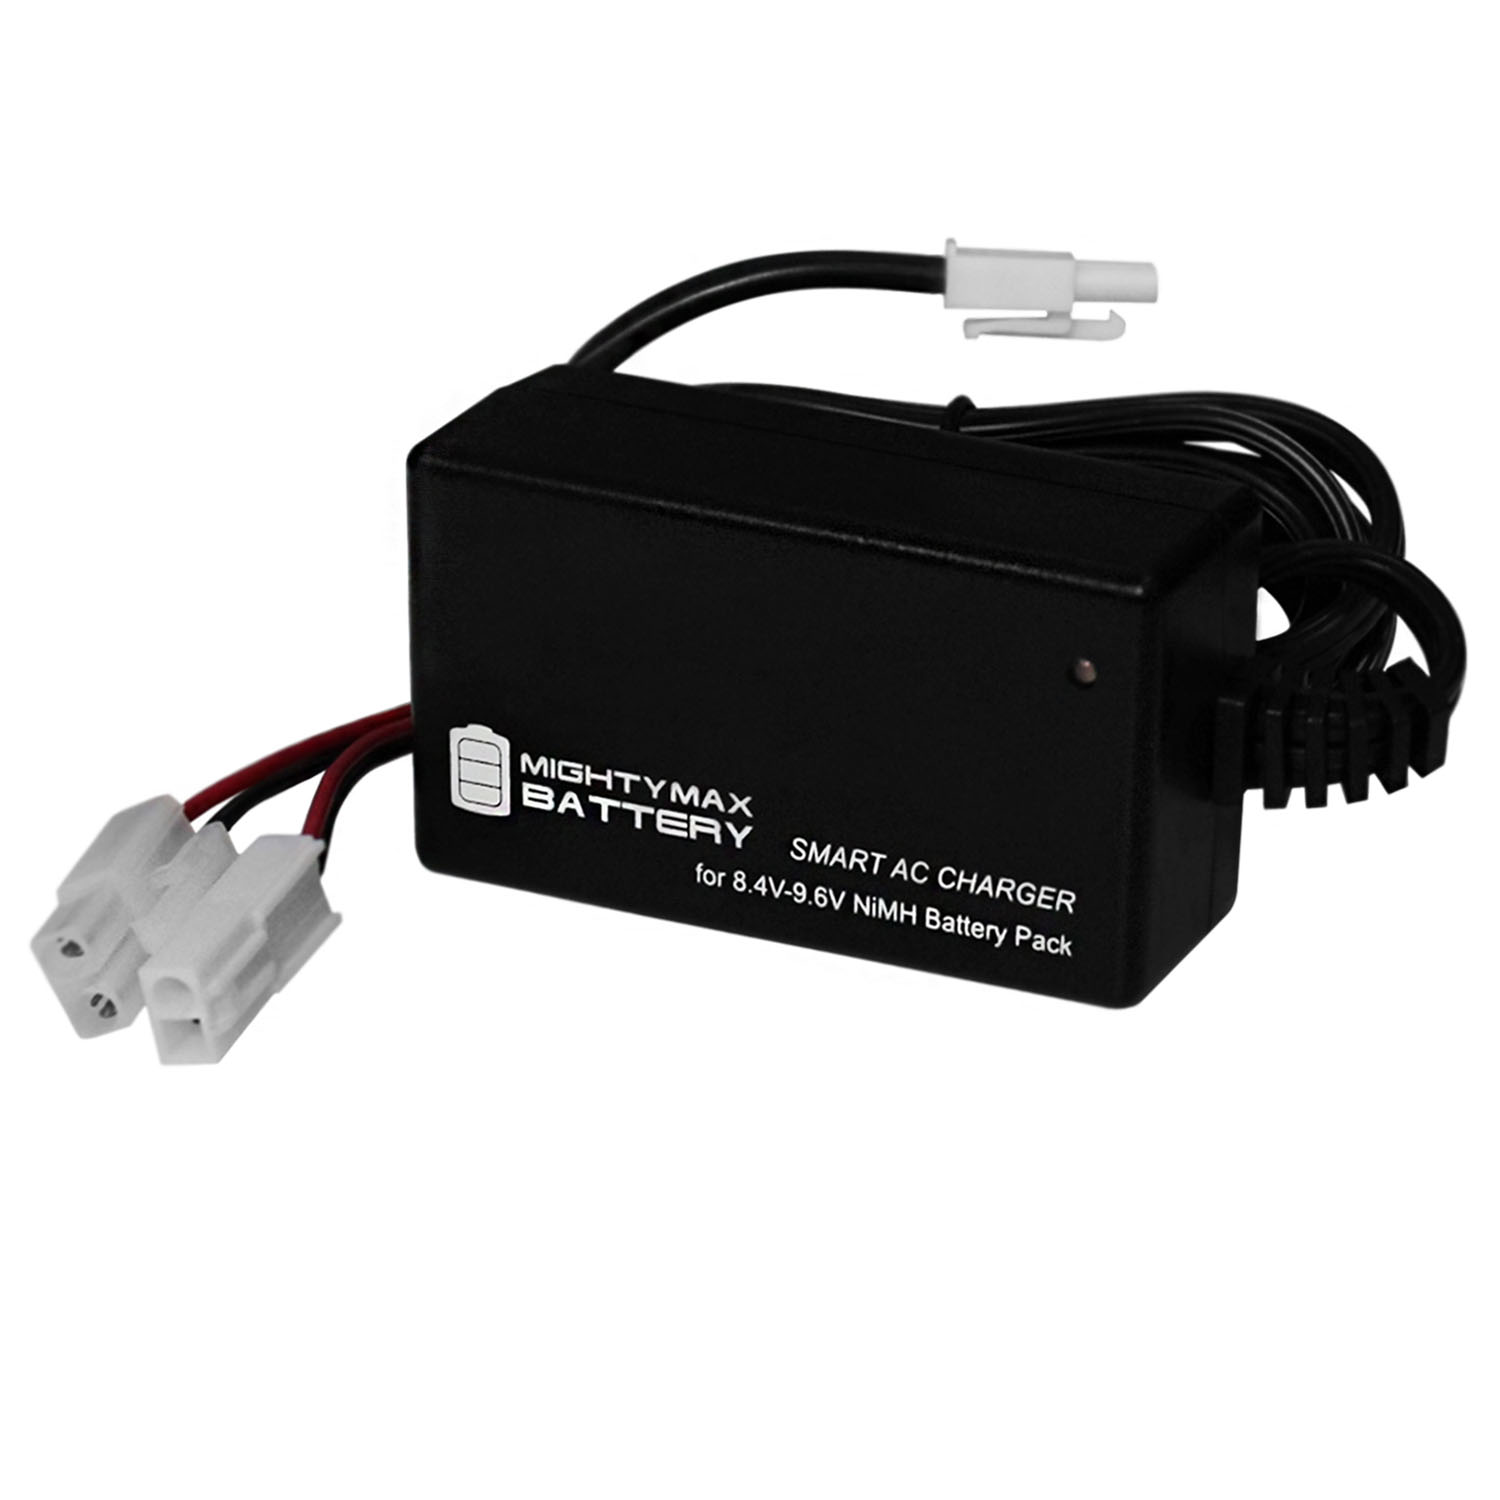 Smart Charger for 8.4V-9.6V NiMH Battery Packs w/ Mini Tamiya Connector